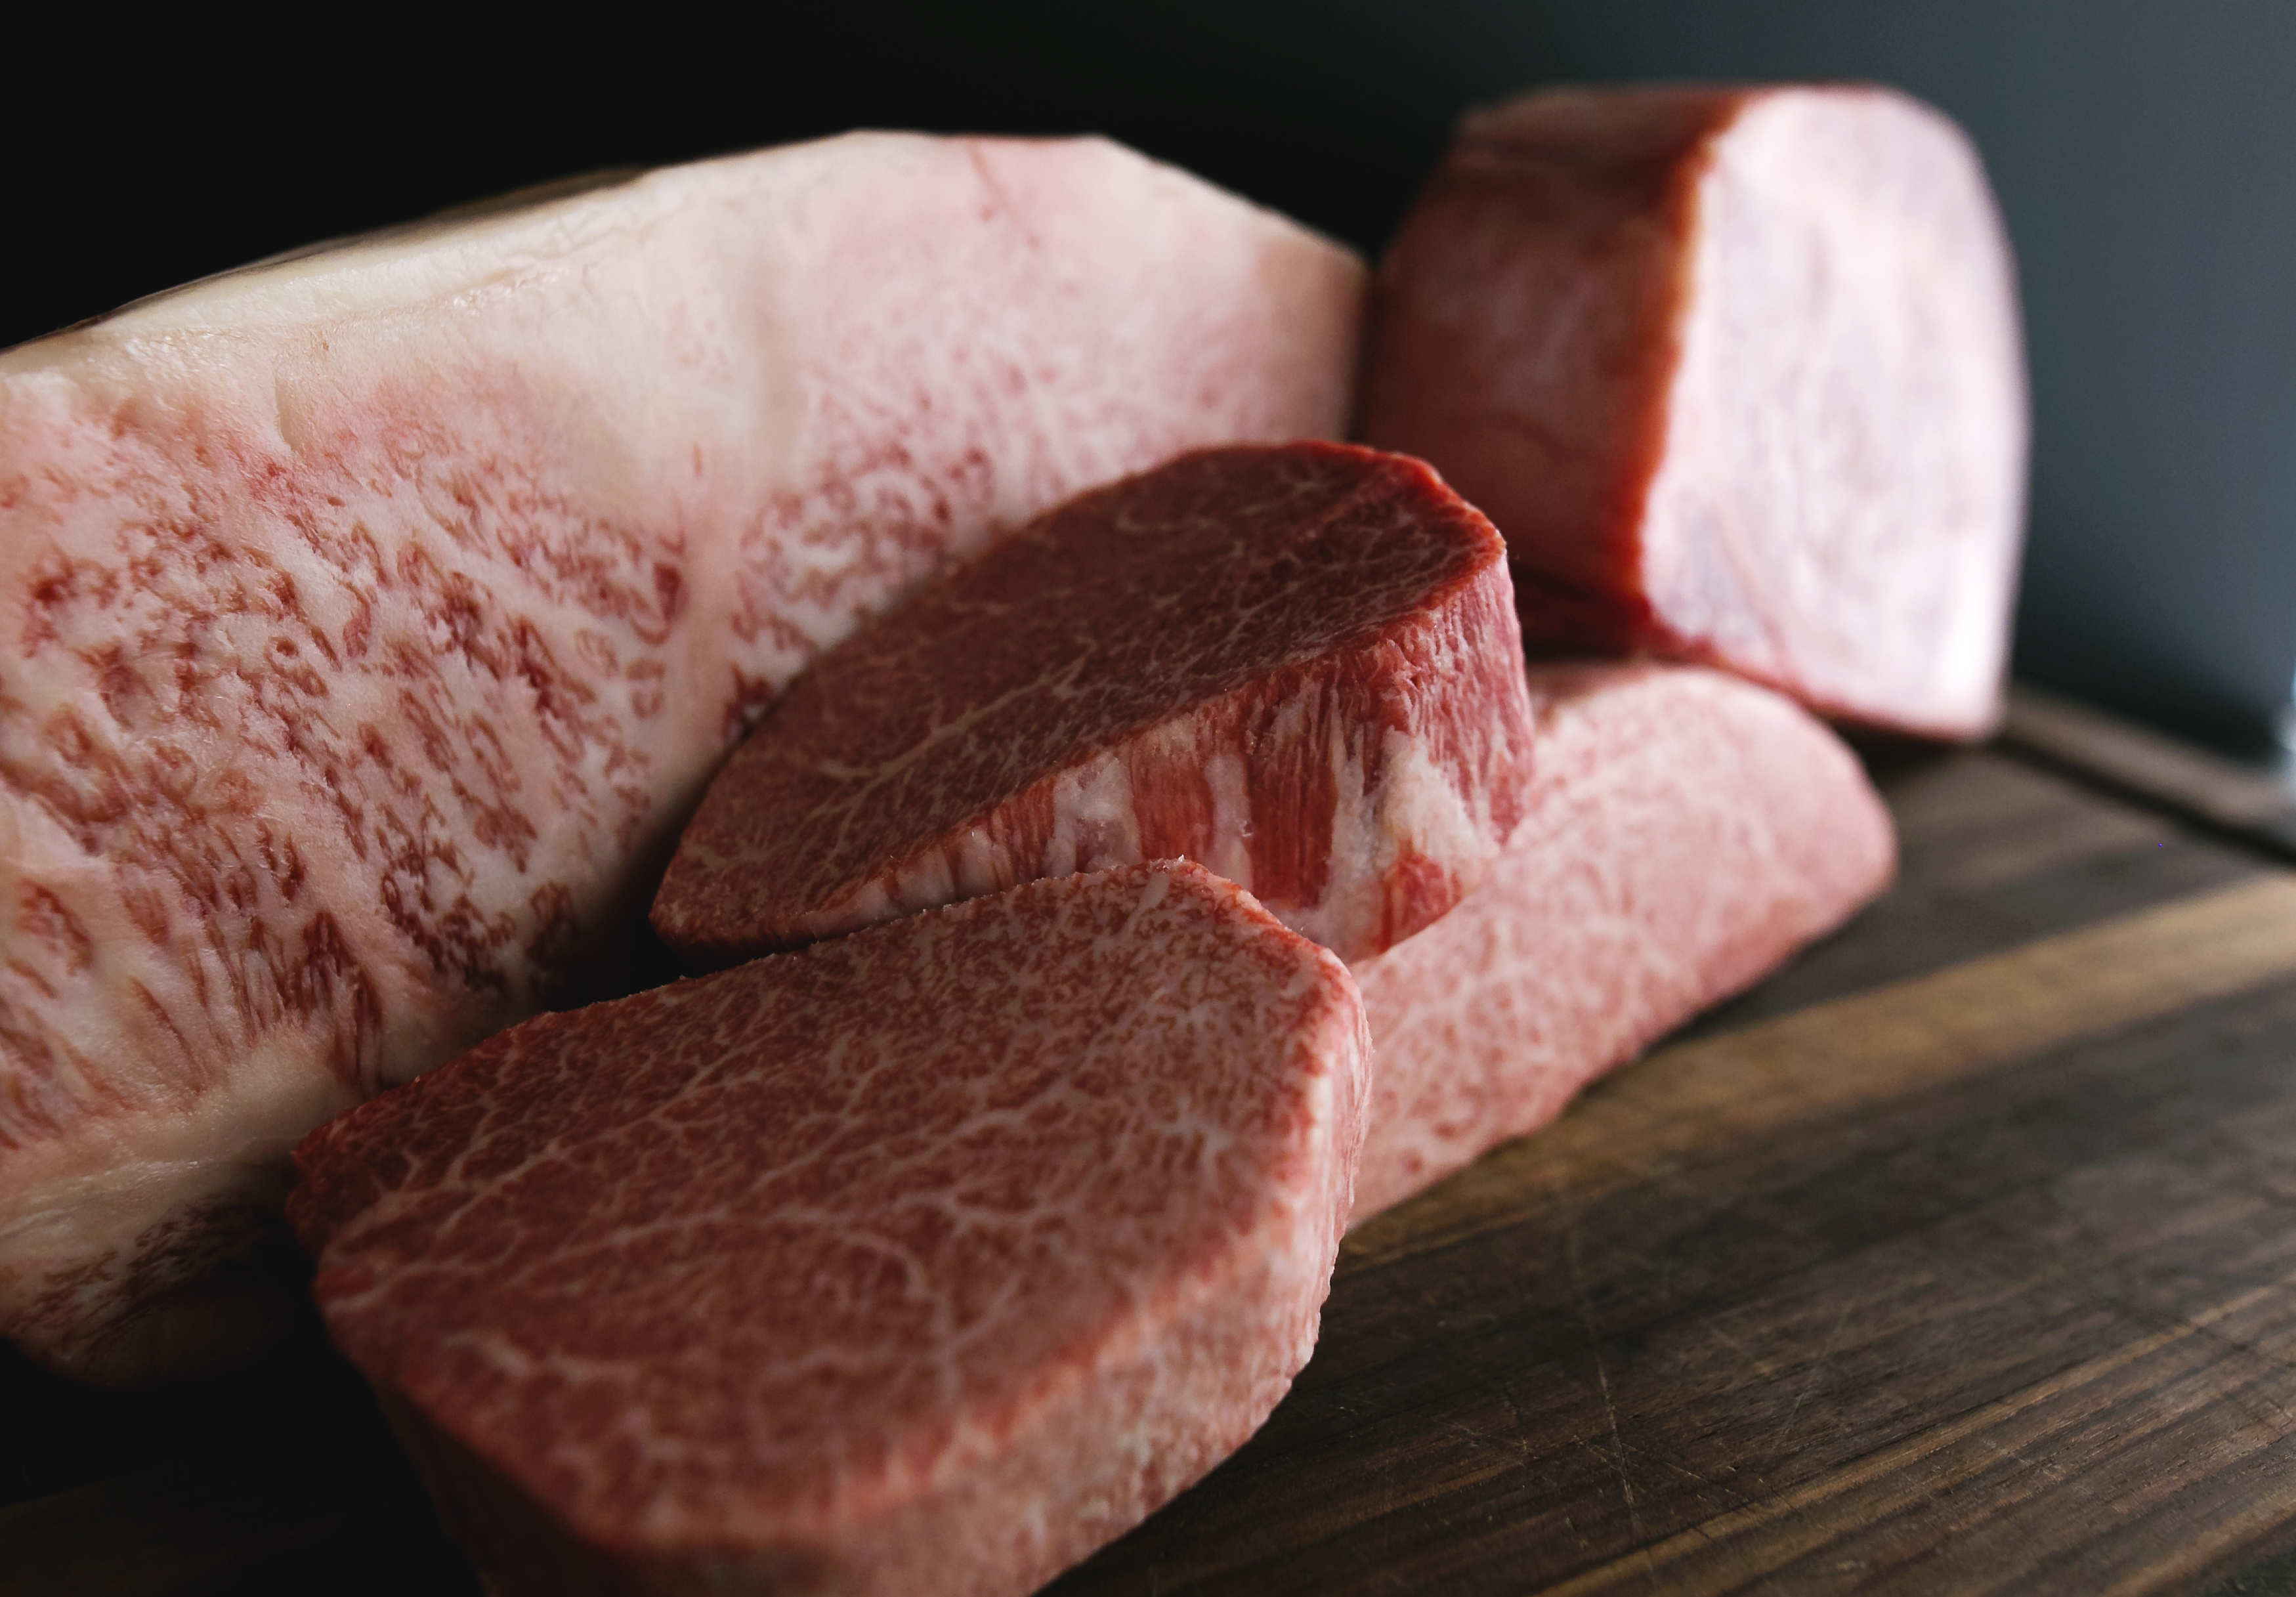 """35294a4aeb52 The """"A5"""" represents the highest level of Japanese Wagyu beef based on an  overall quality score ..."""